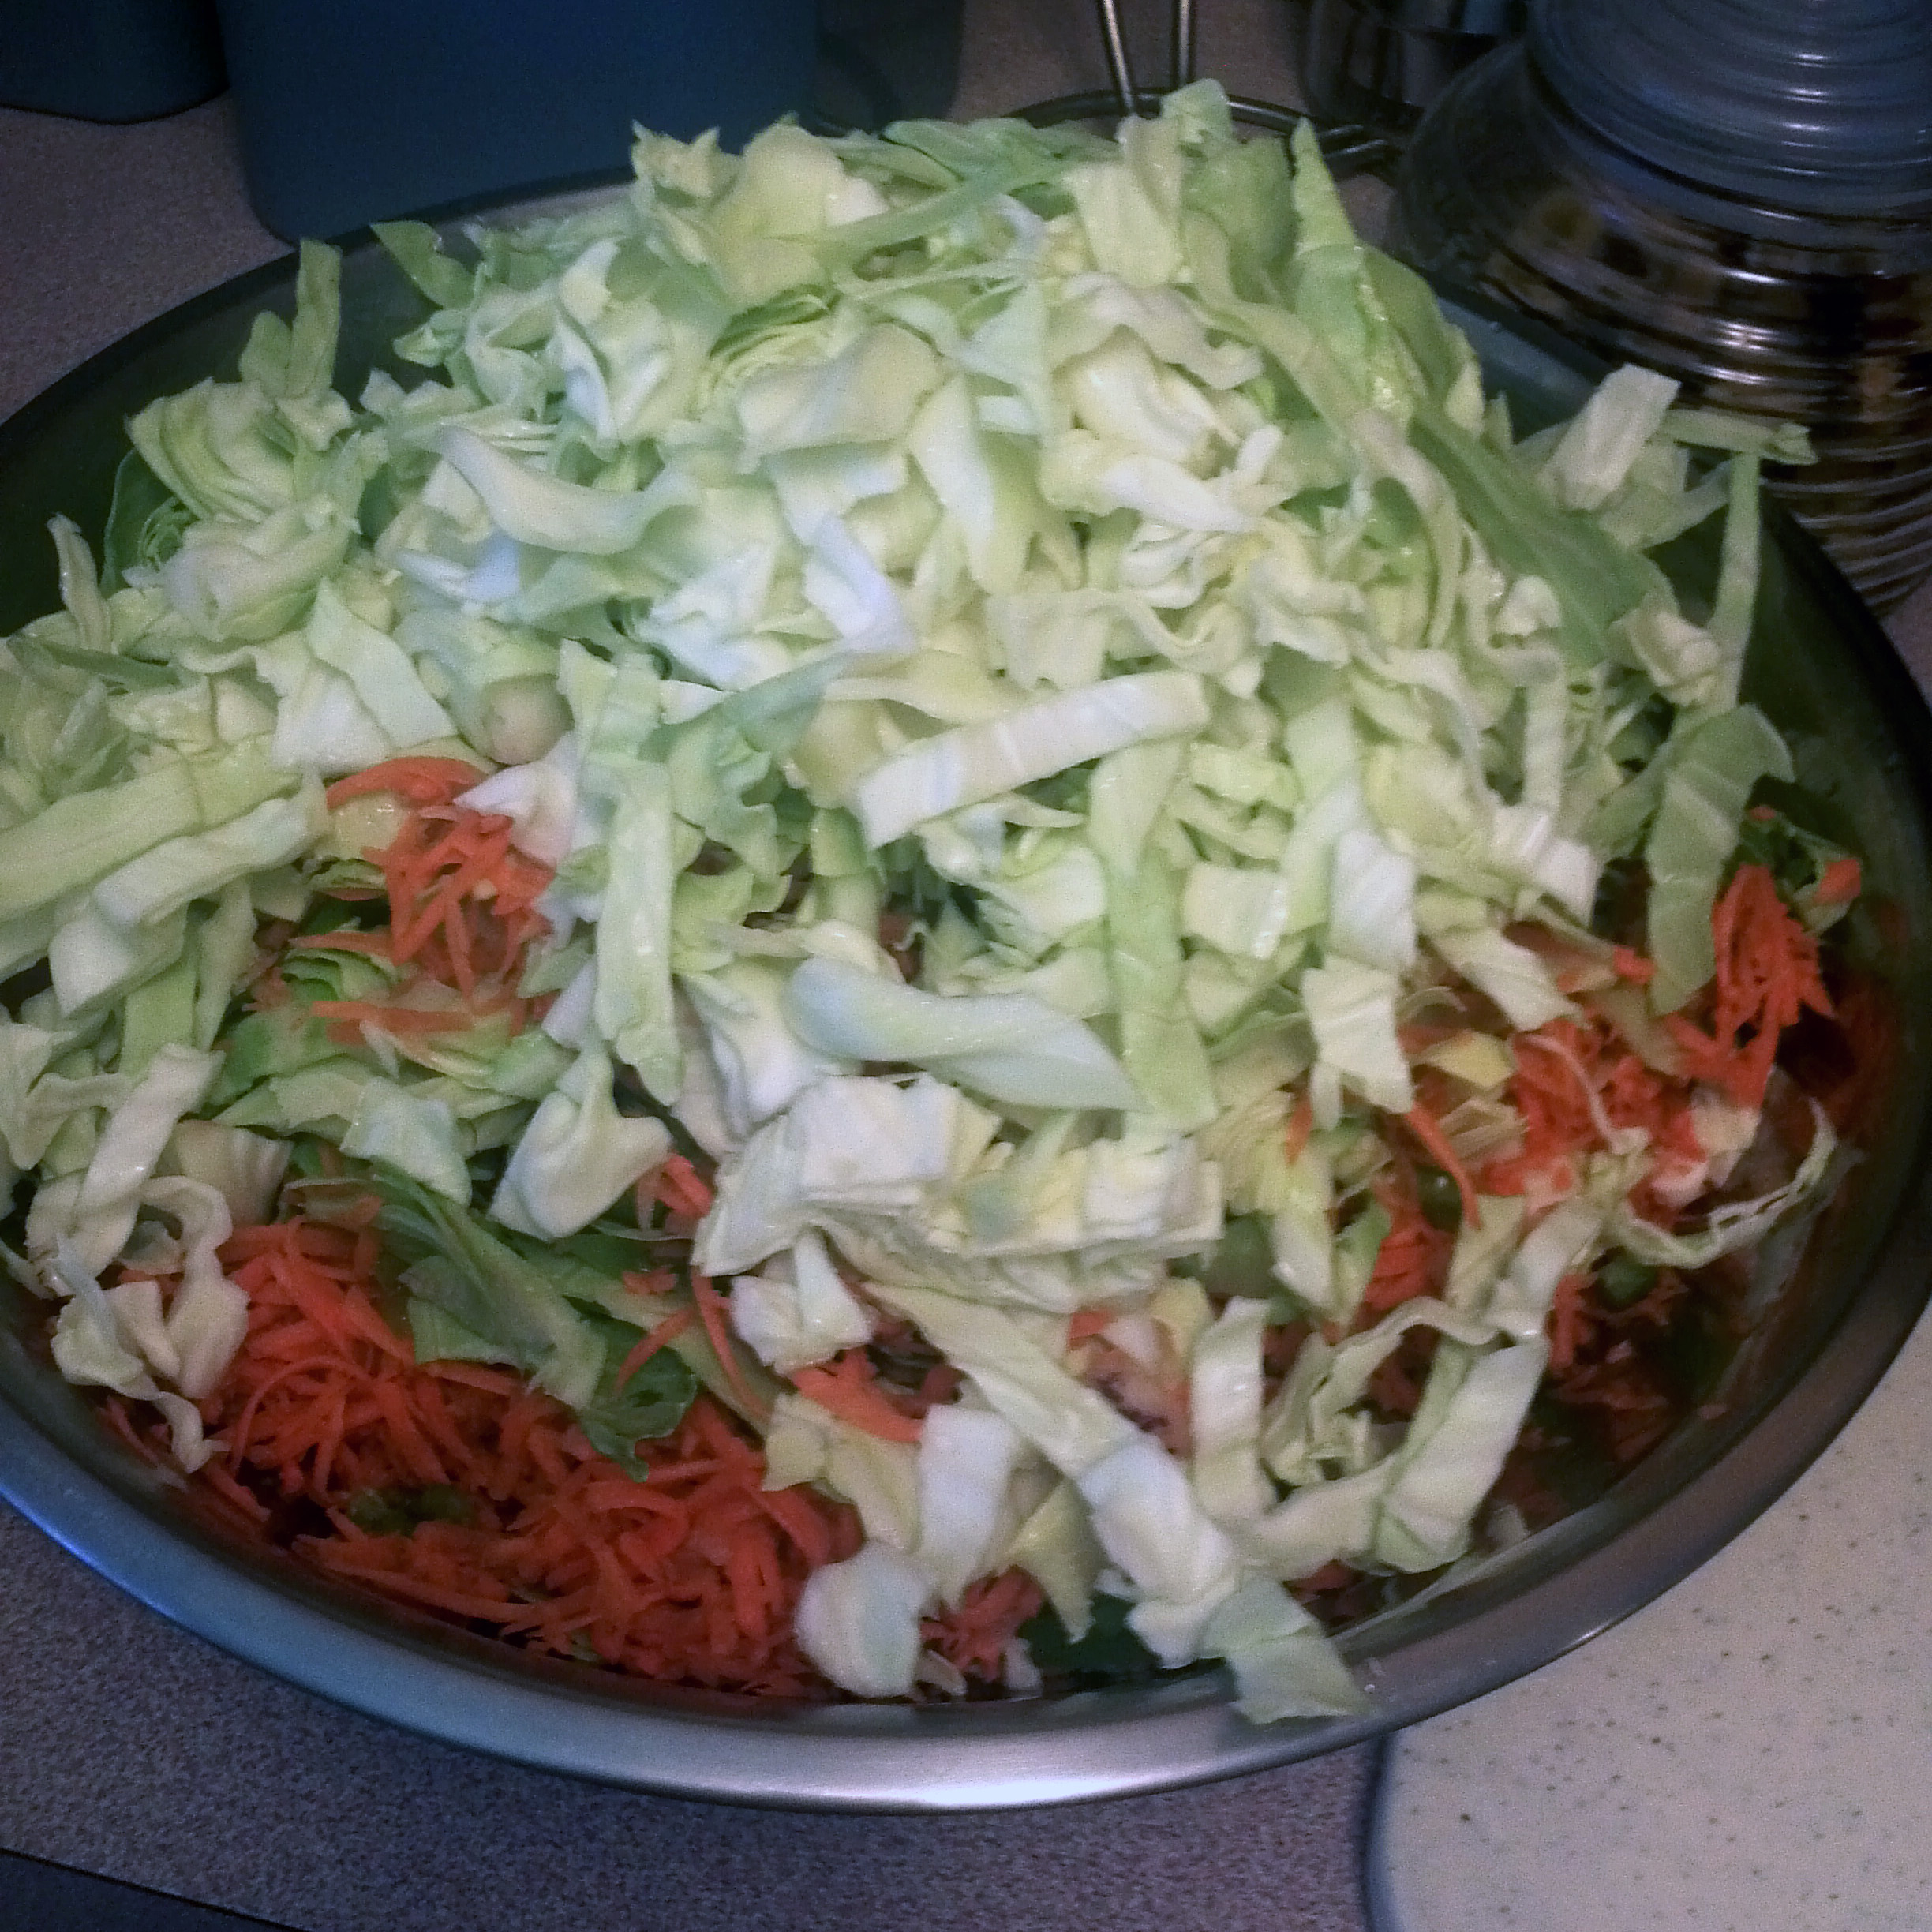 I just basically eyeballed the ratio of cabbage to the rest of the ingredients.